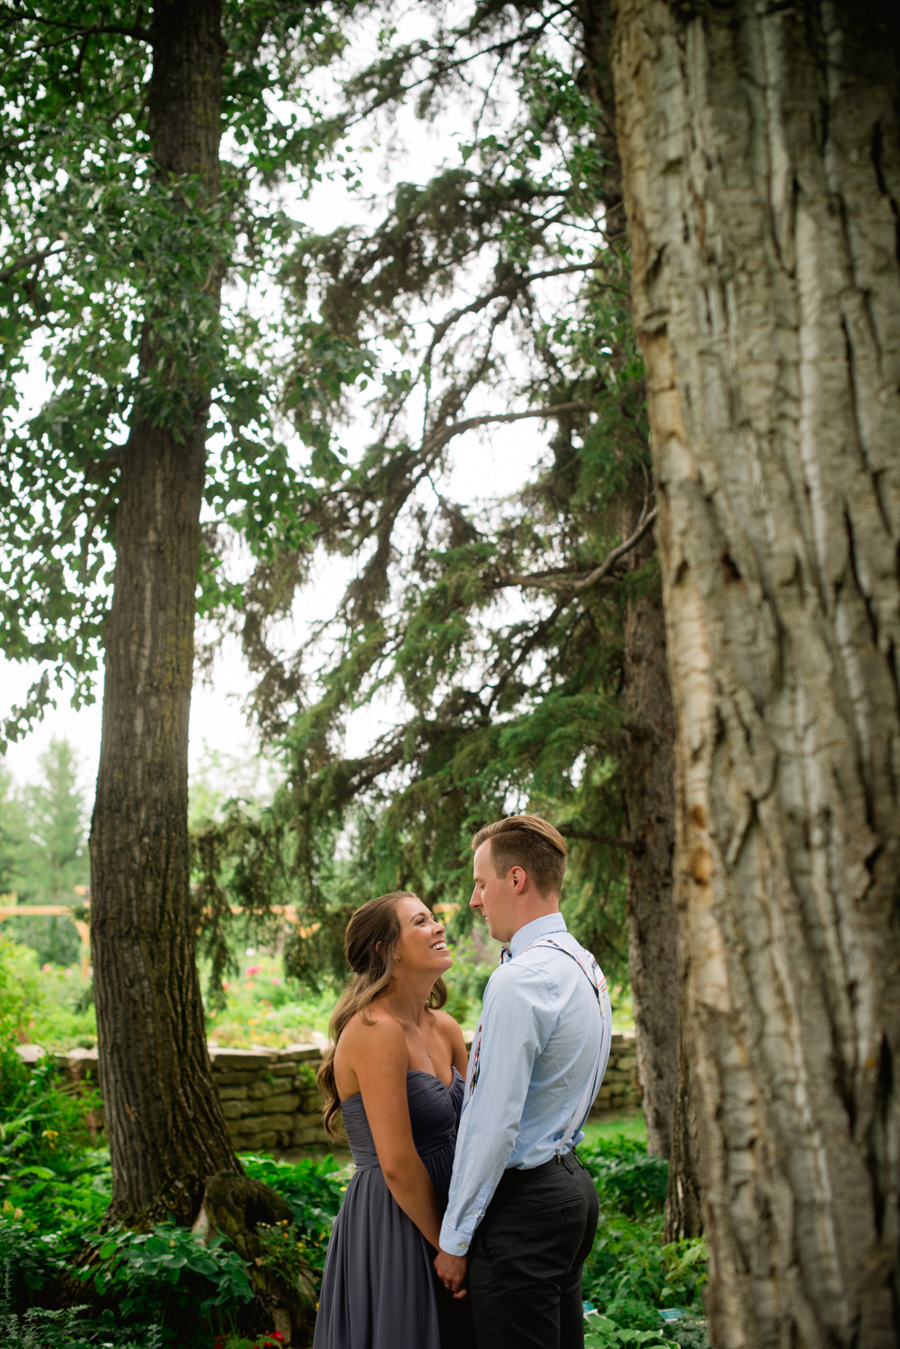 bbcollective_yeg_2016_jessicandjoe_wedding_photography038.jpg